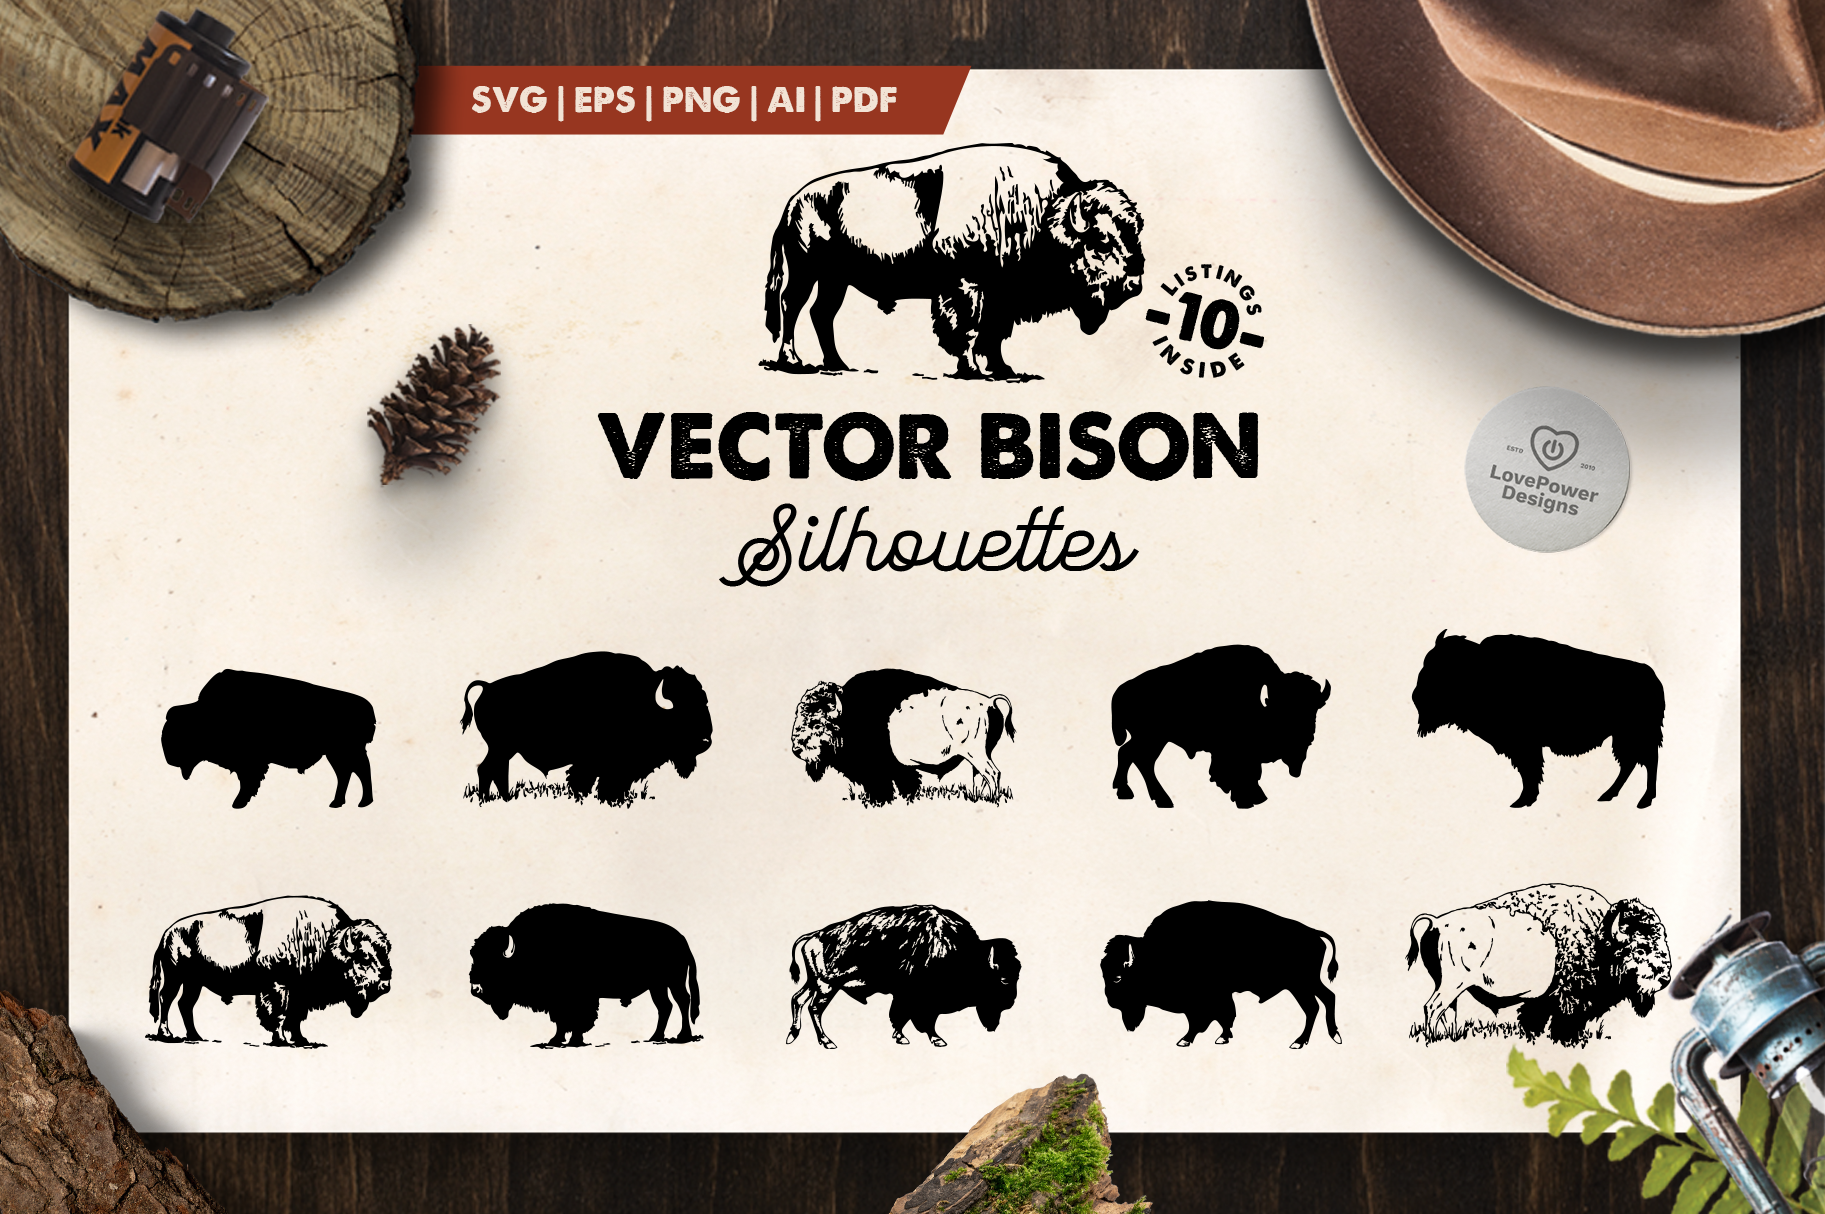 Bison Silhouette | 10 Vector Bison Silhouettes | Bison SVG